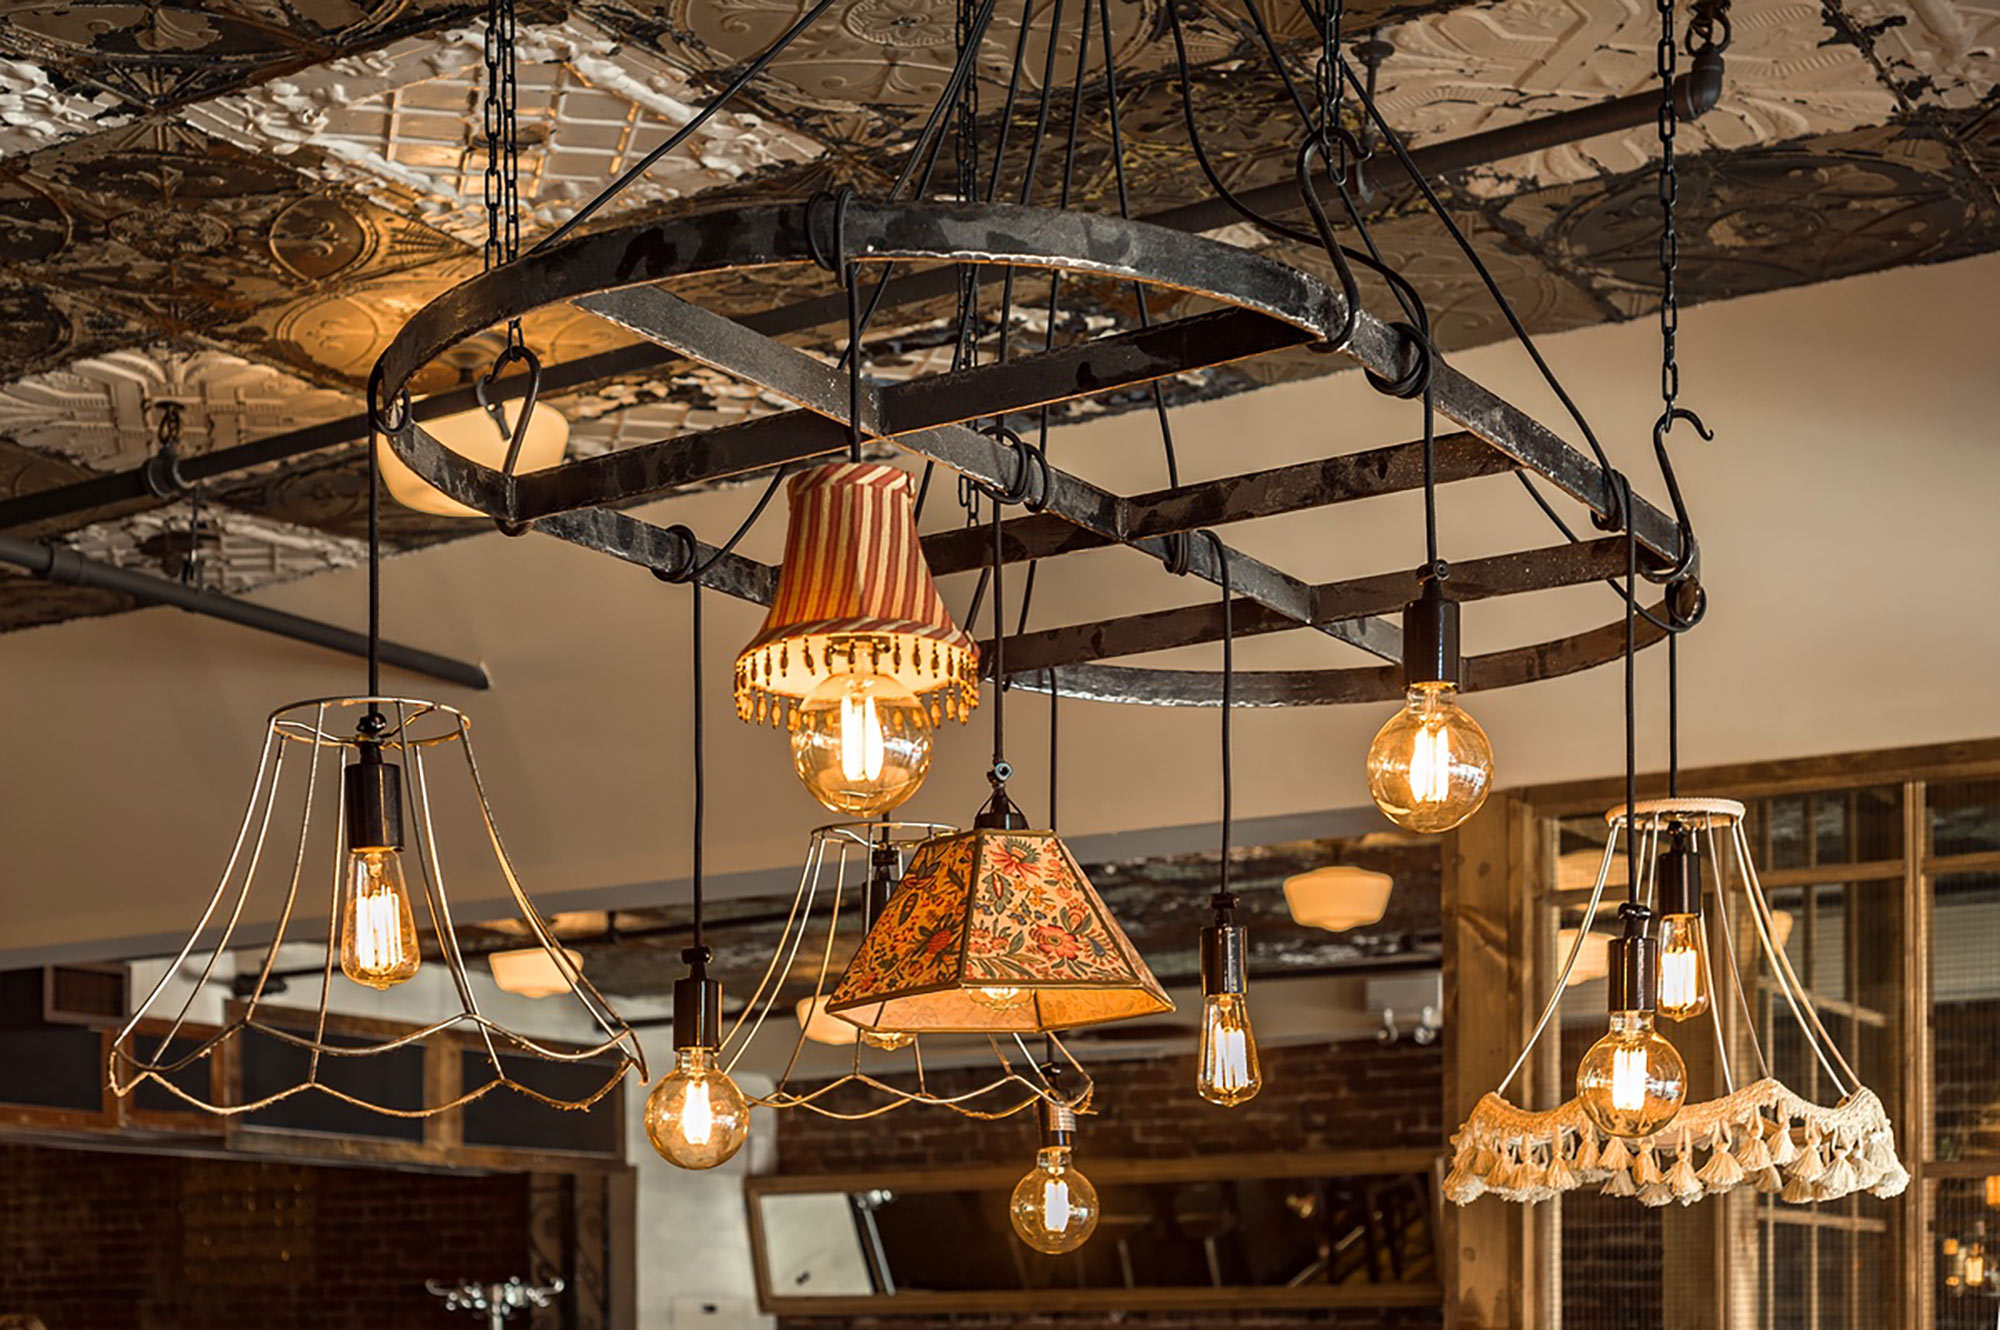 interior-design-restaurant-halifax-vintage-light-fixture.jpg